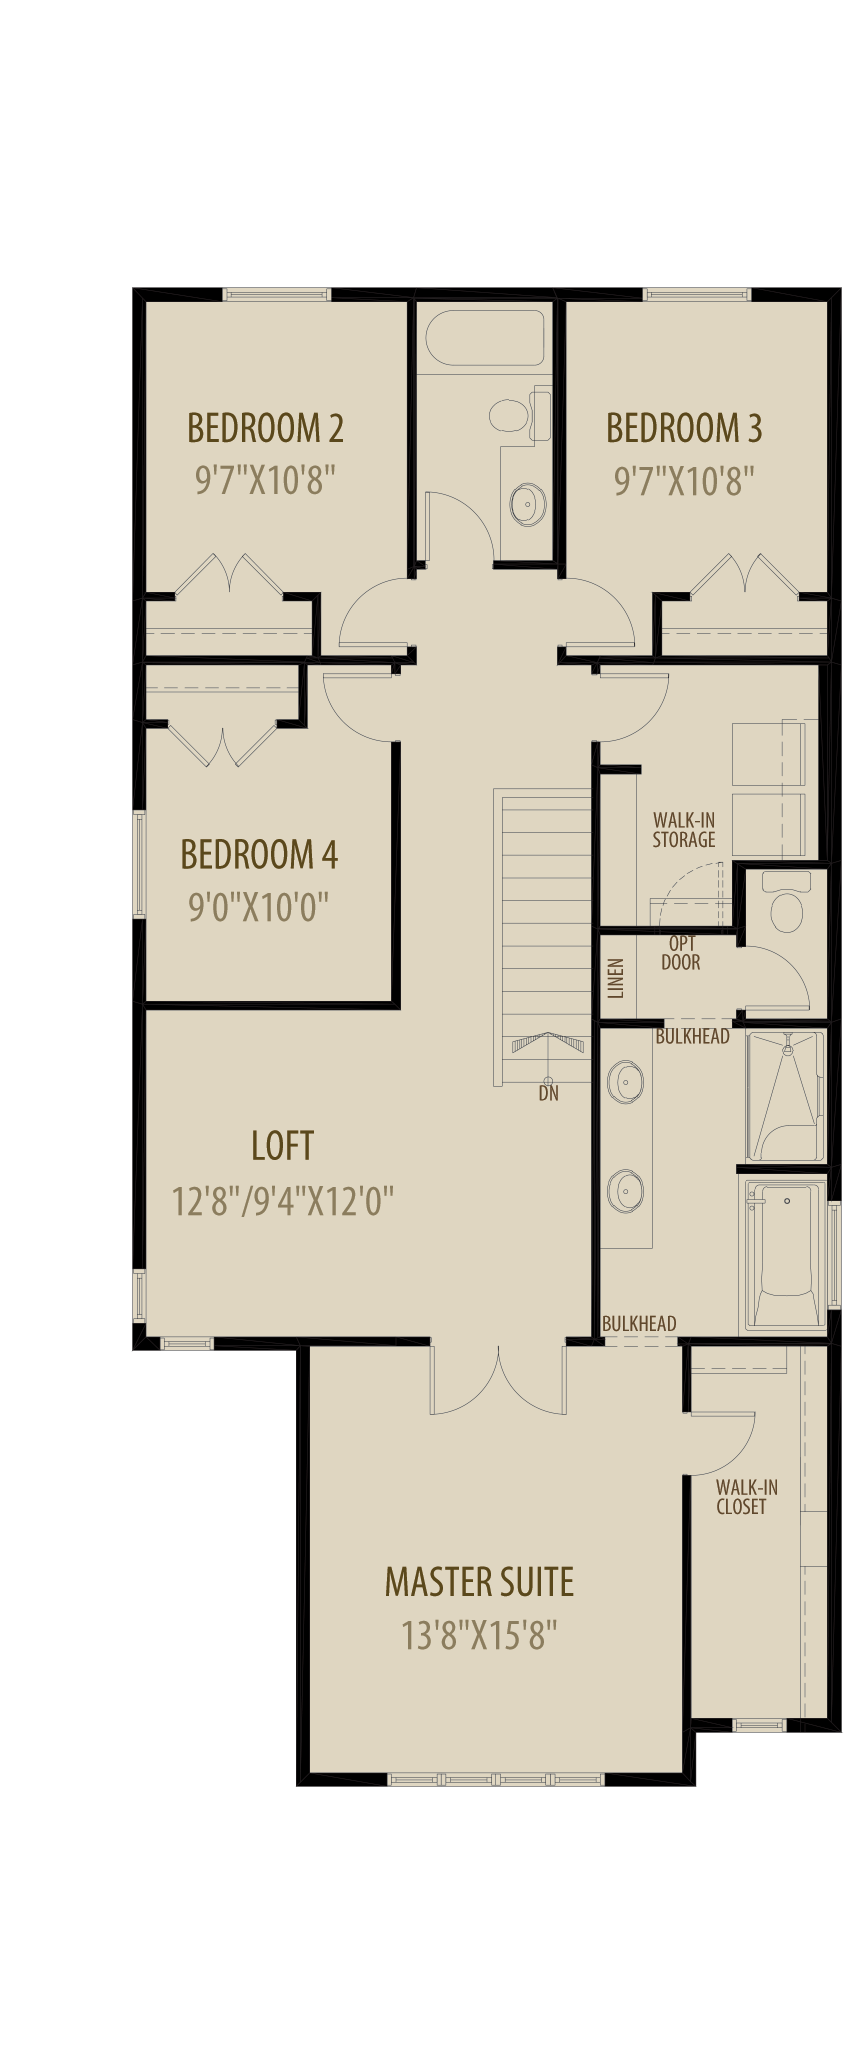 Revised Upper Floor 3 With 4Th Bedroom (Adds 60 Sq Ft)